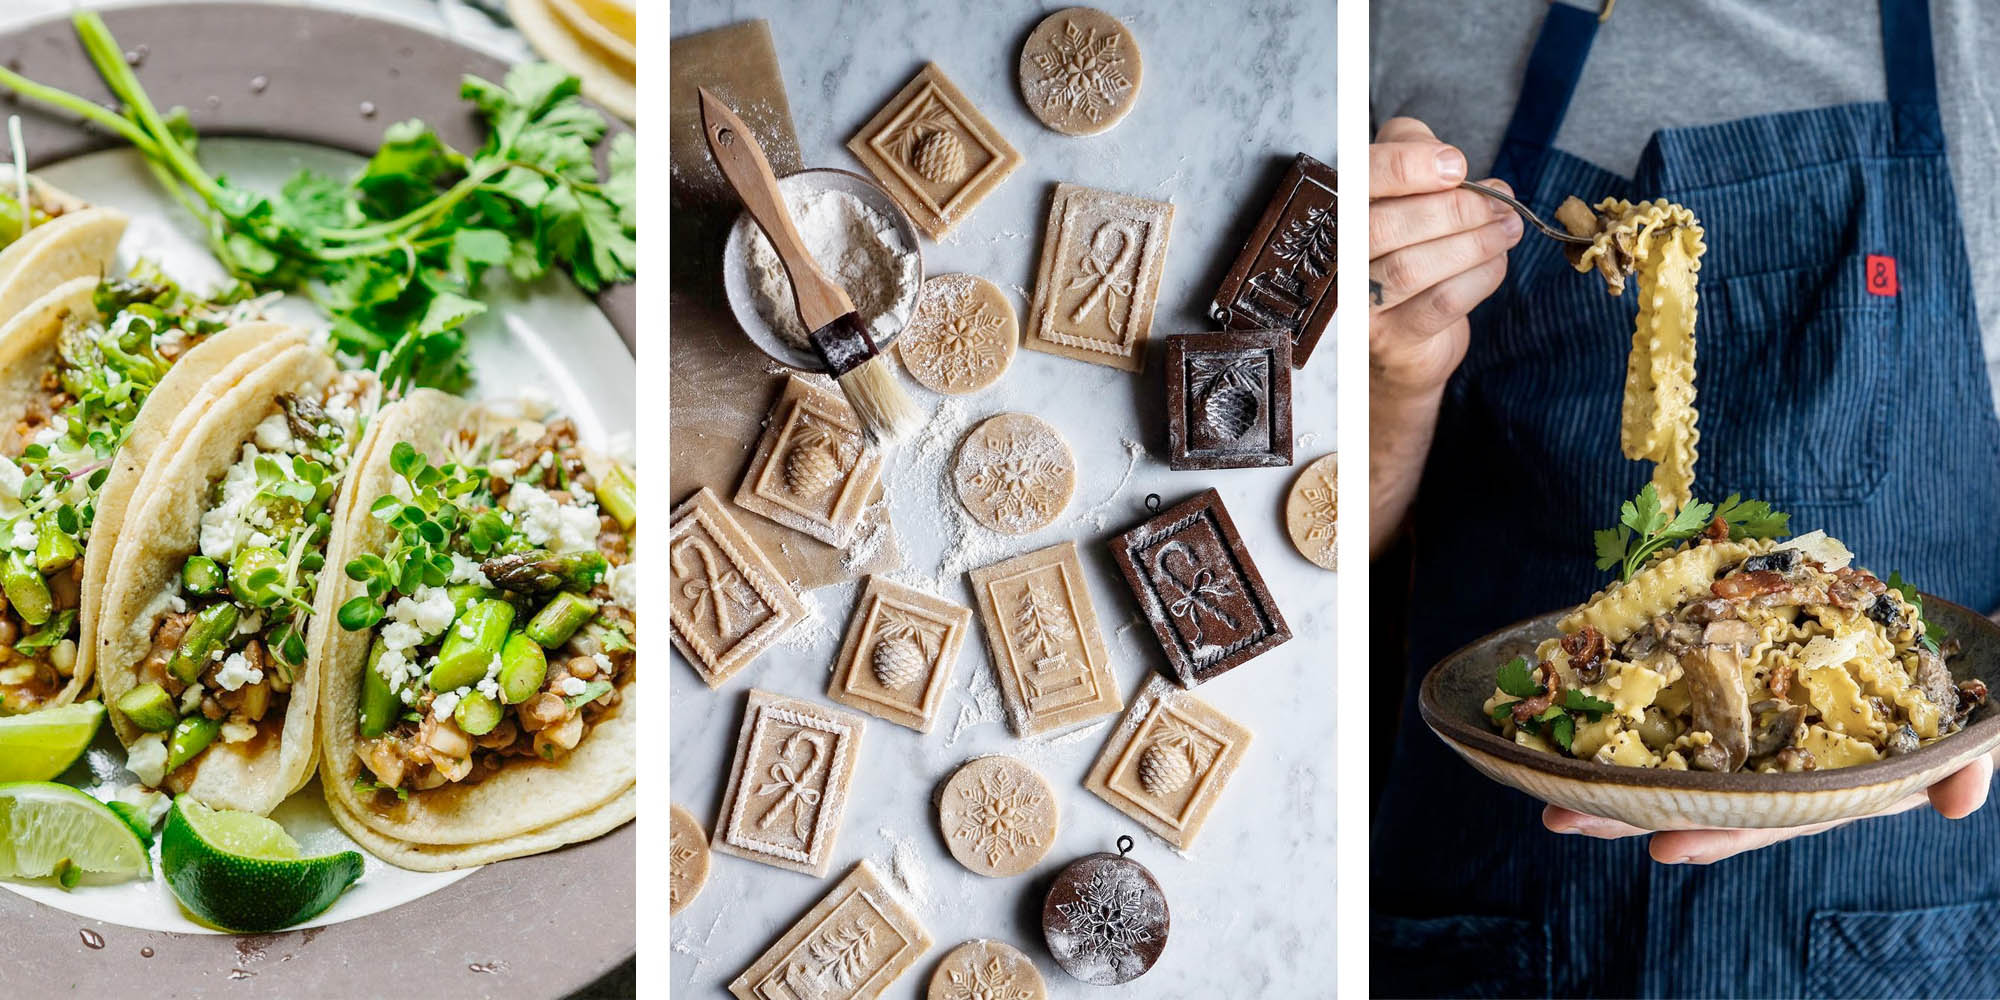 THESE INSTAGRAM-ACCOUNTS MAKE US HUNGRY